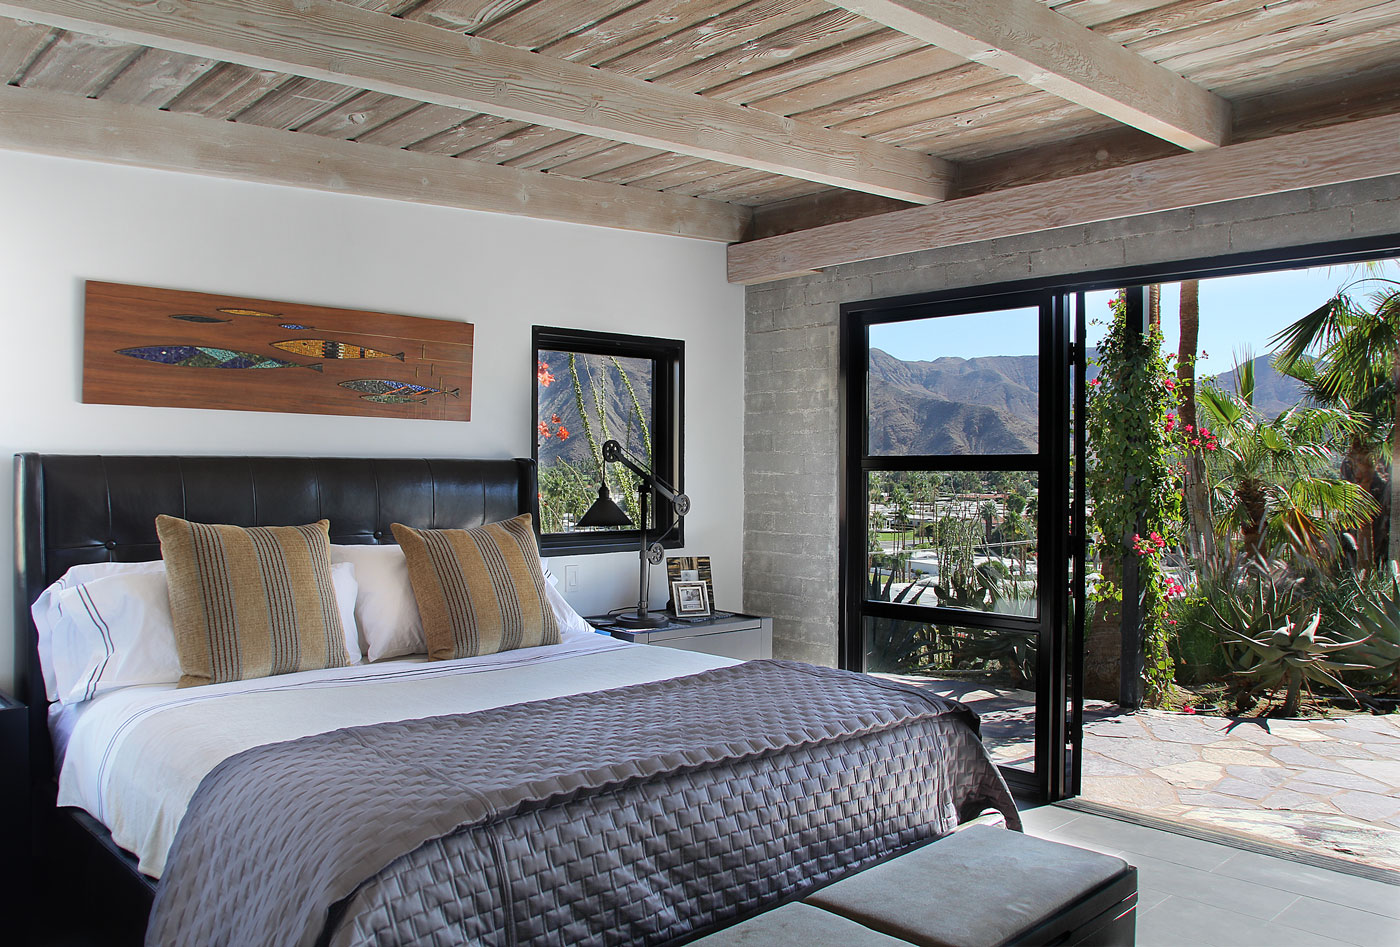 10 Master+suite+unobstructed+views+of+Palm+Springs+valley+and+San+Jacinto+mountains